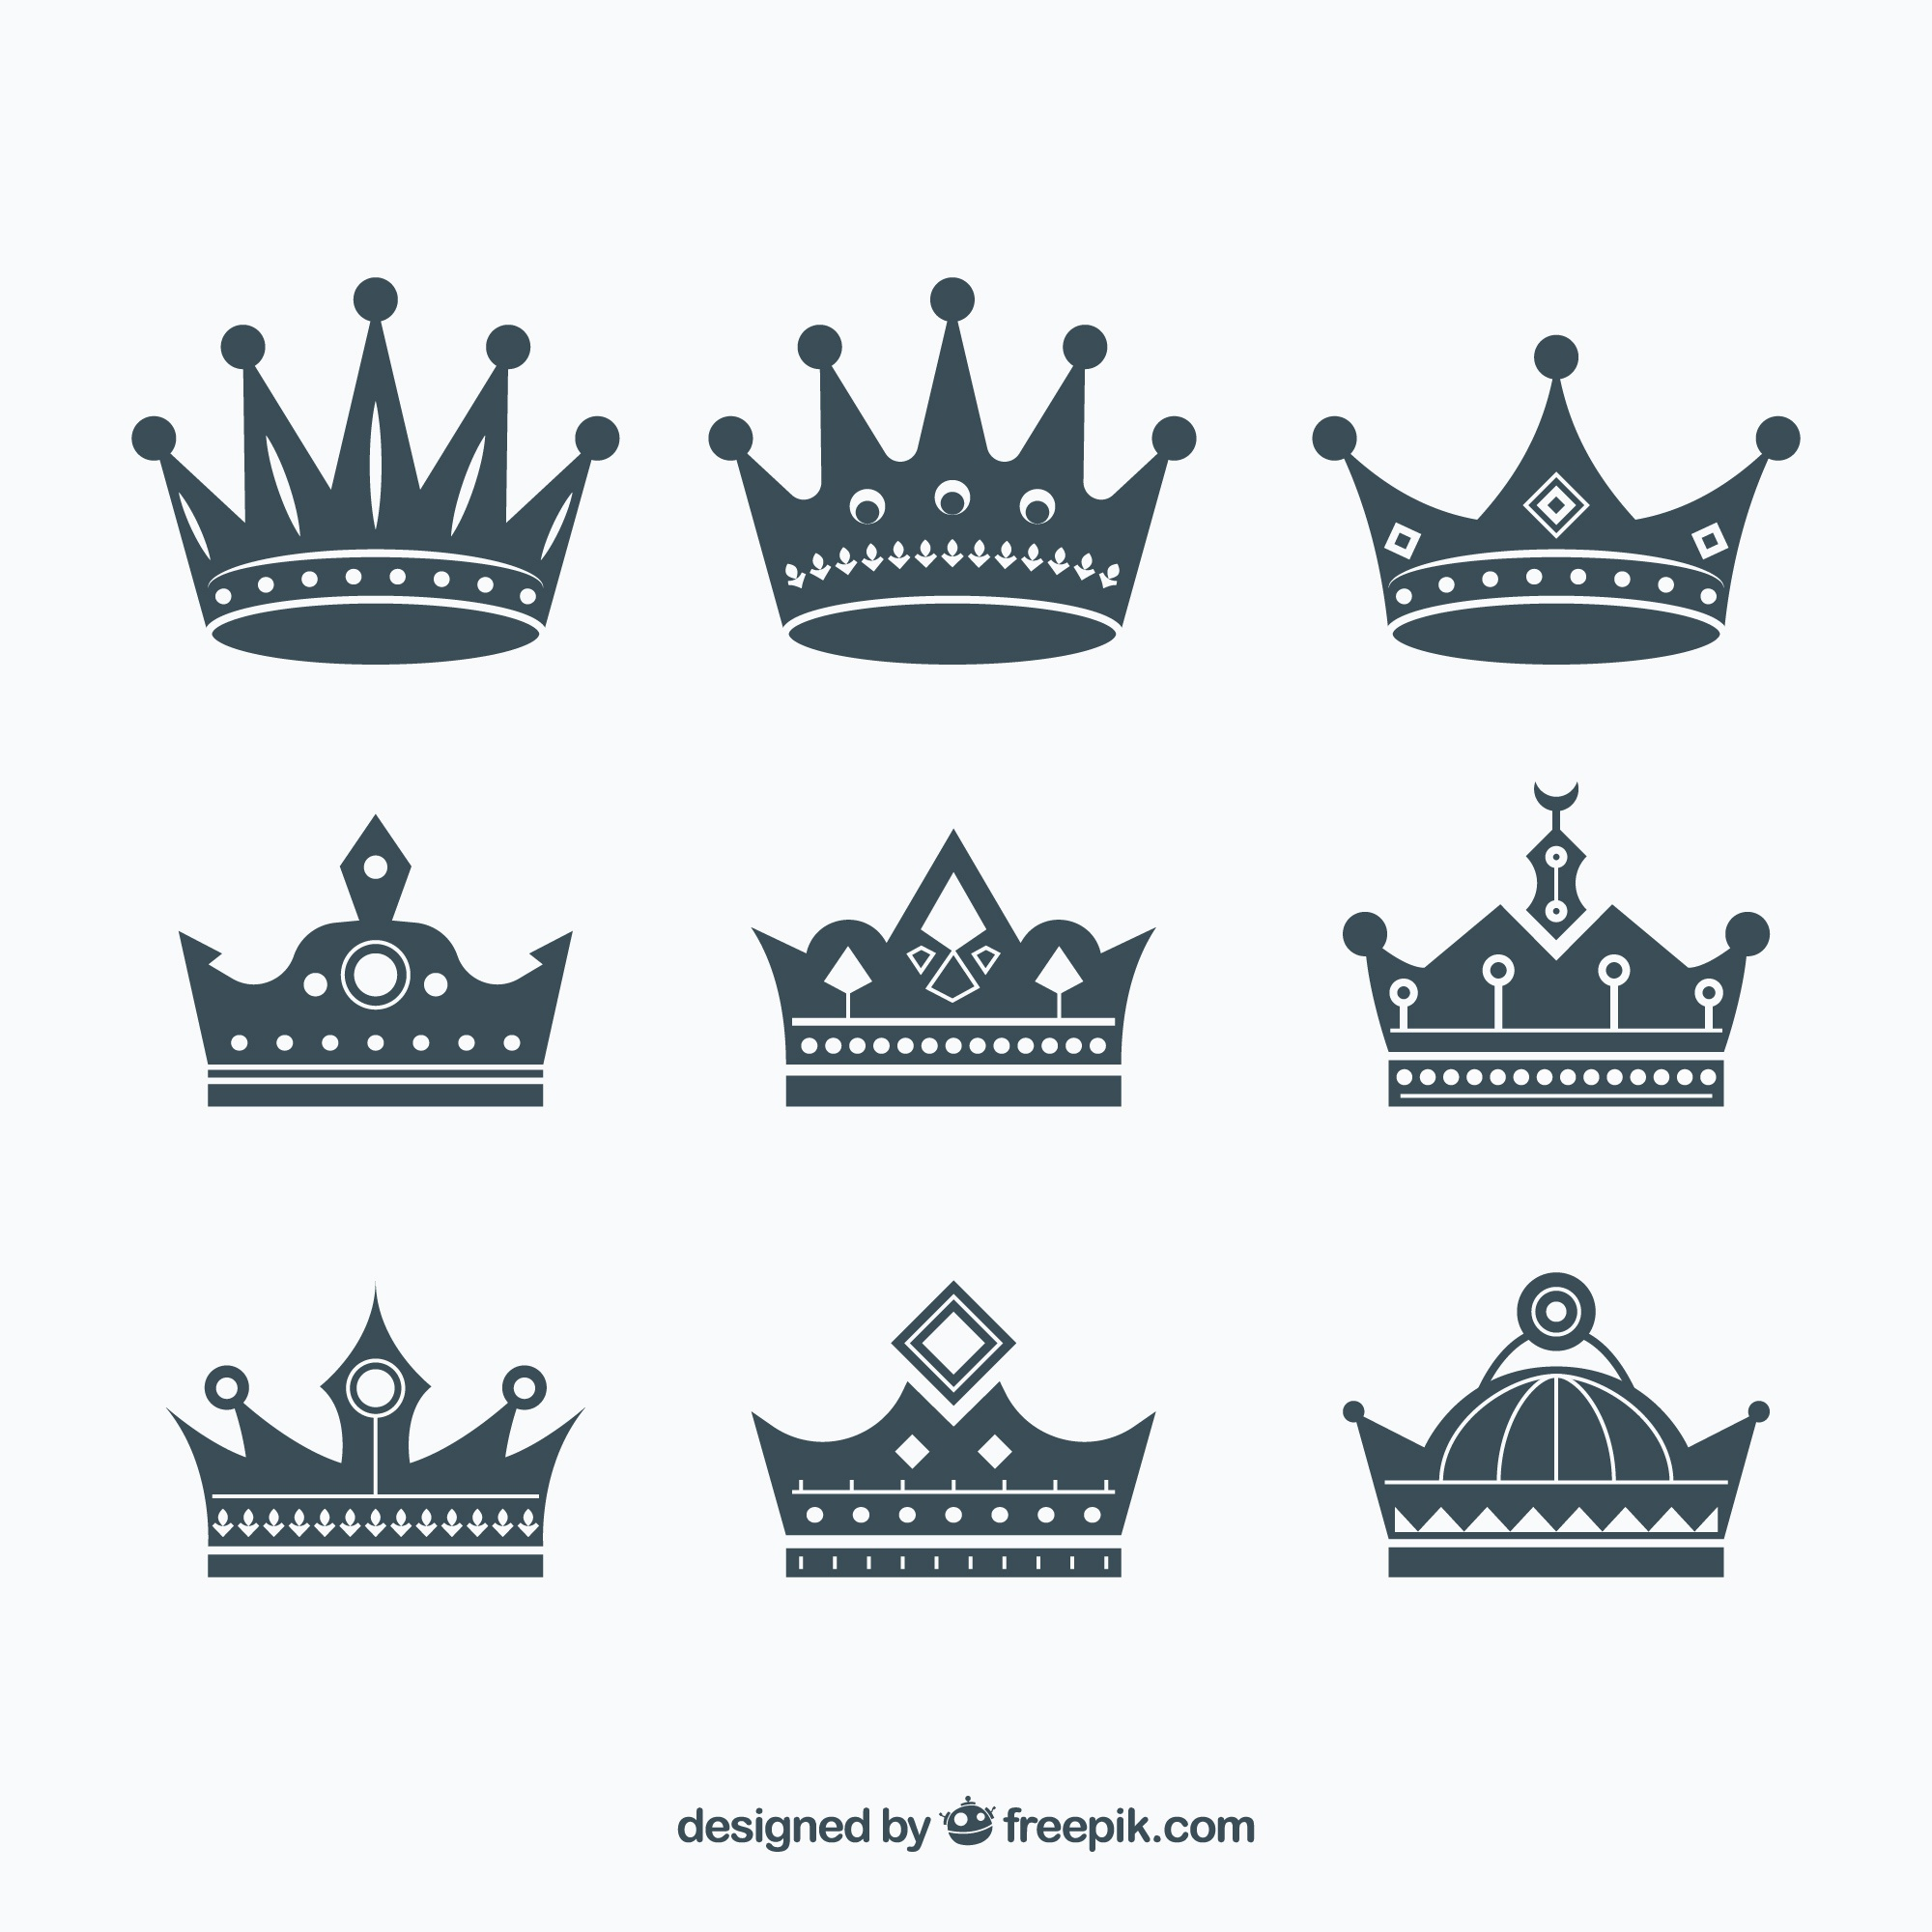 Assortment of flat crowns with great designs